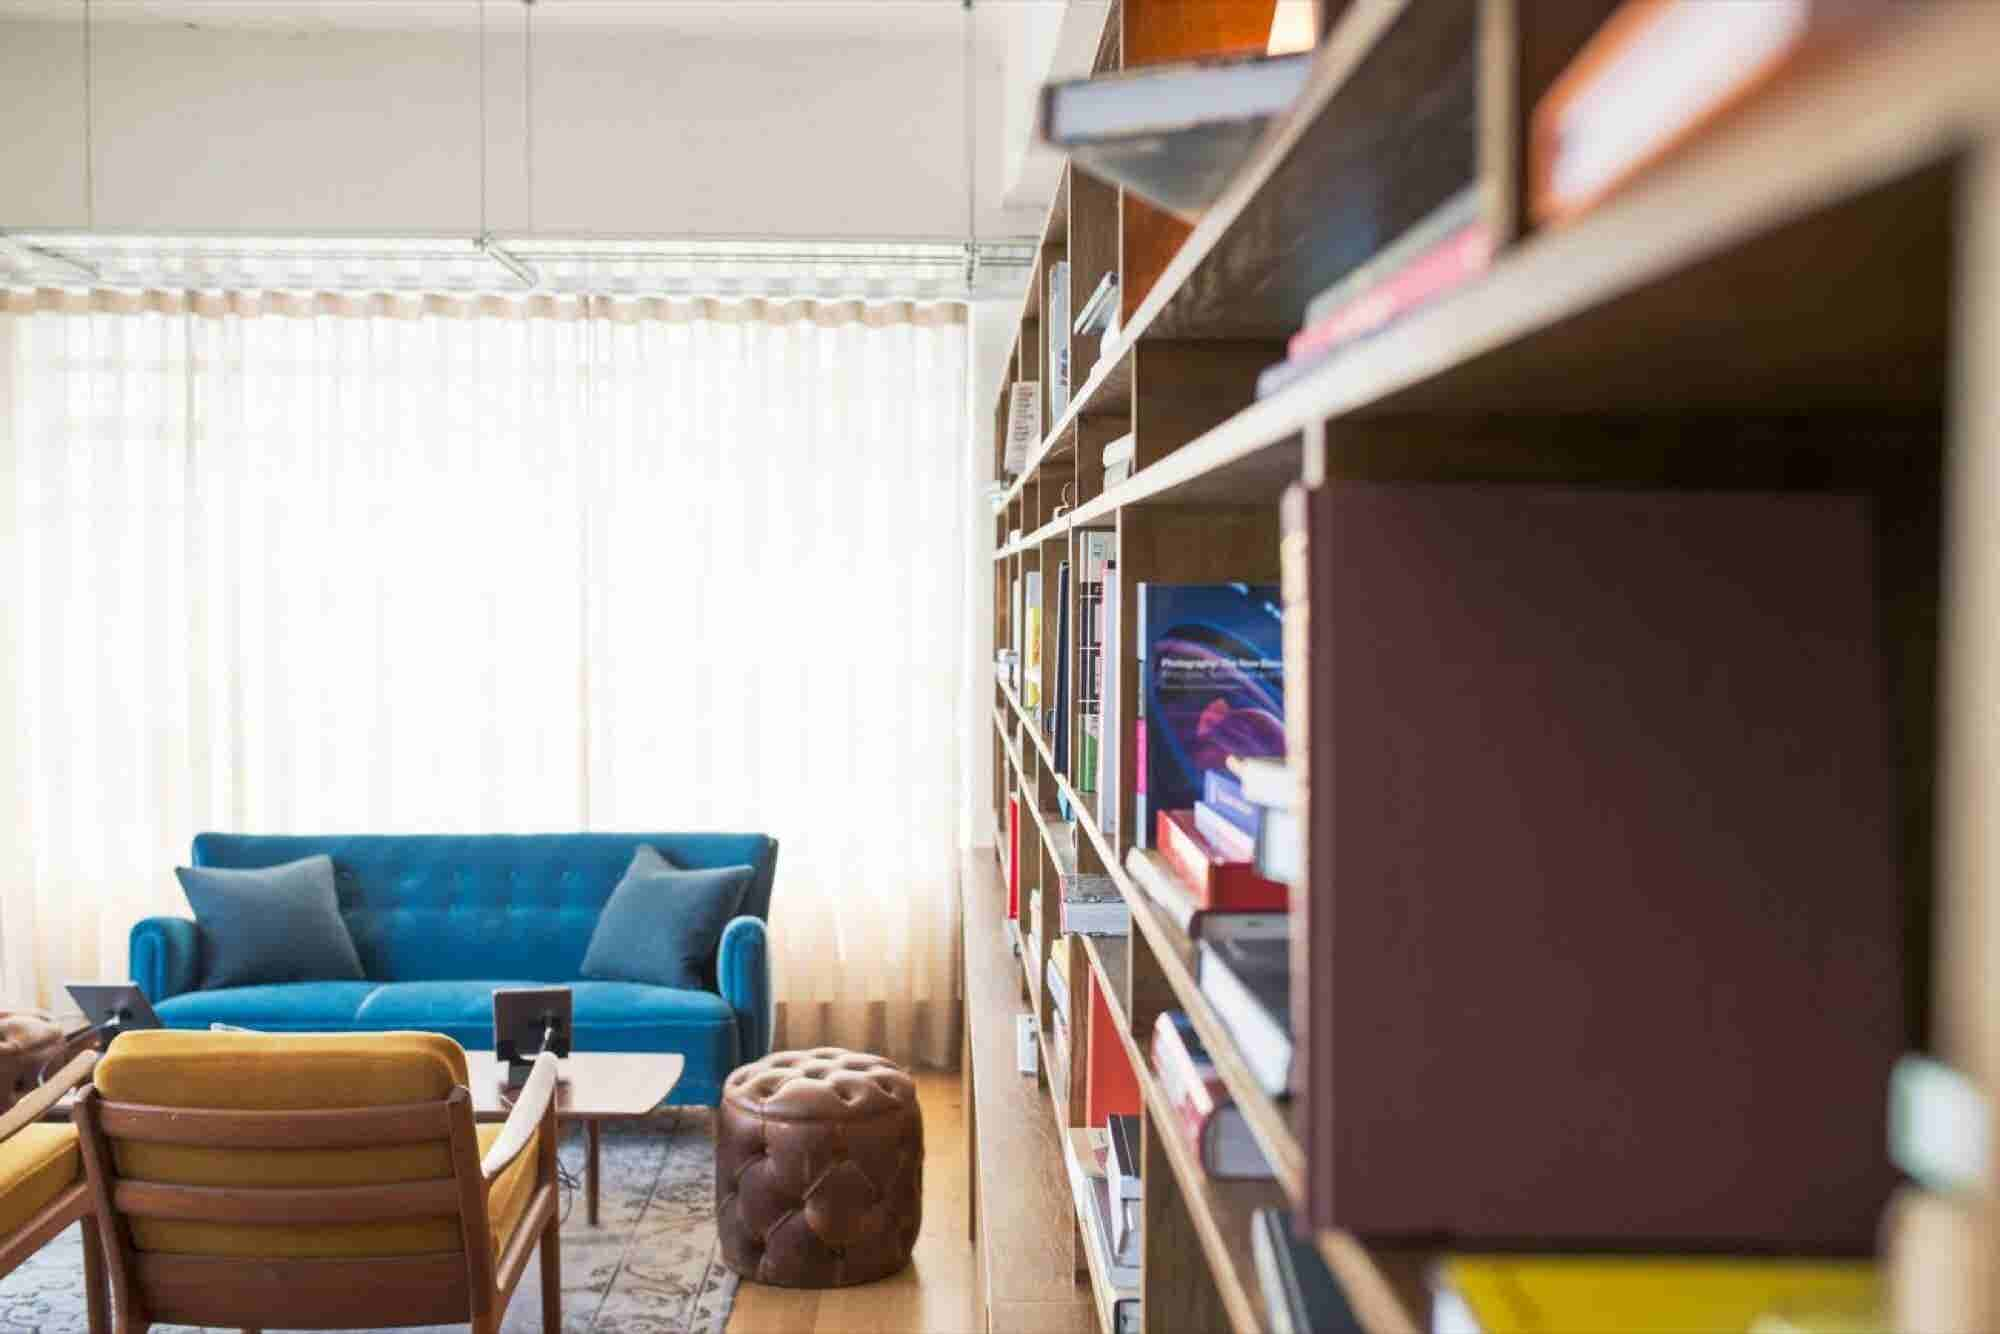 #7 Reasons Co-living Spaces are the Next Big Thing in the Real Estate Industry